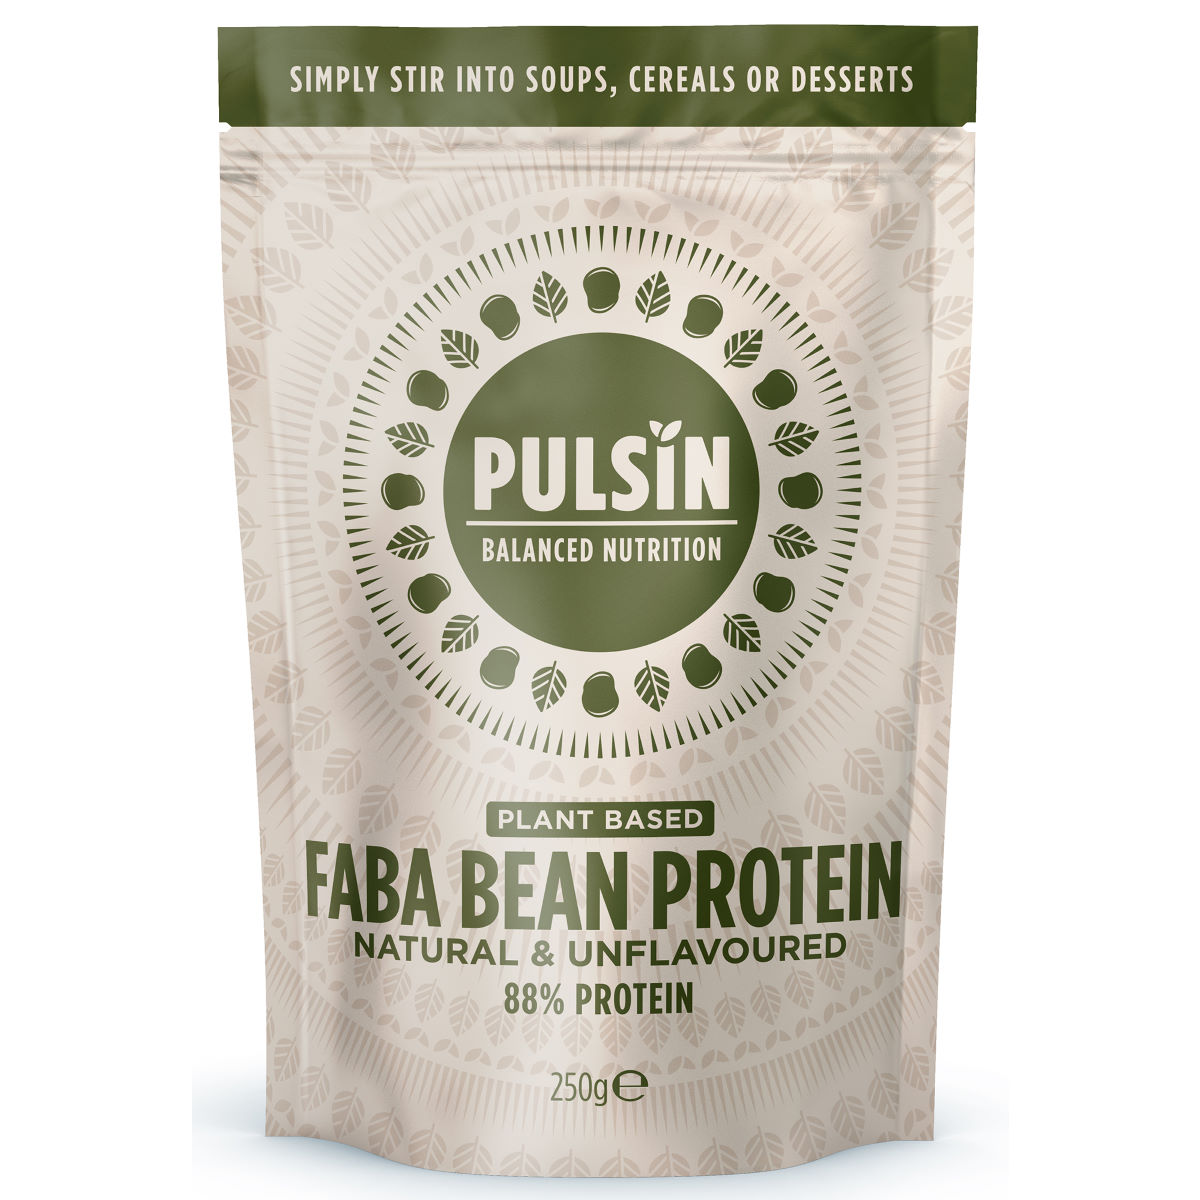 Pulsin Faba Bean Protein Powder (250g) - 250g Natural